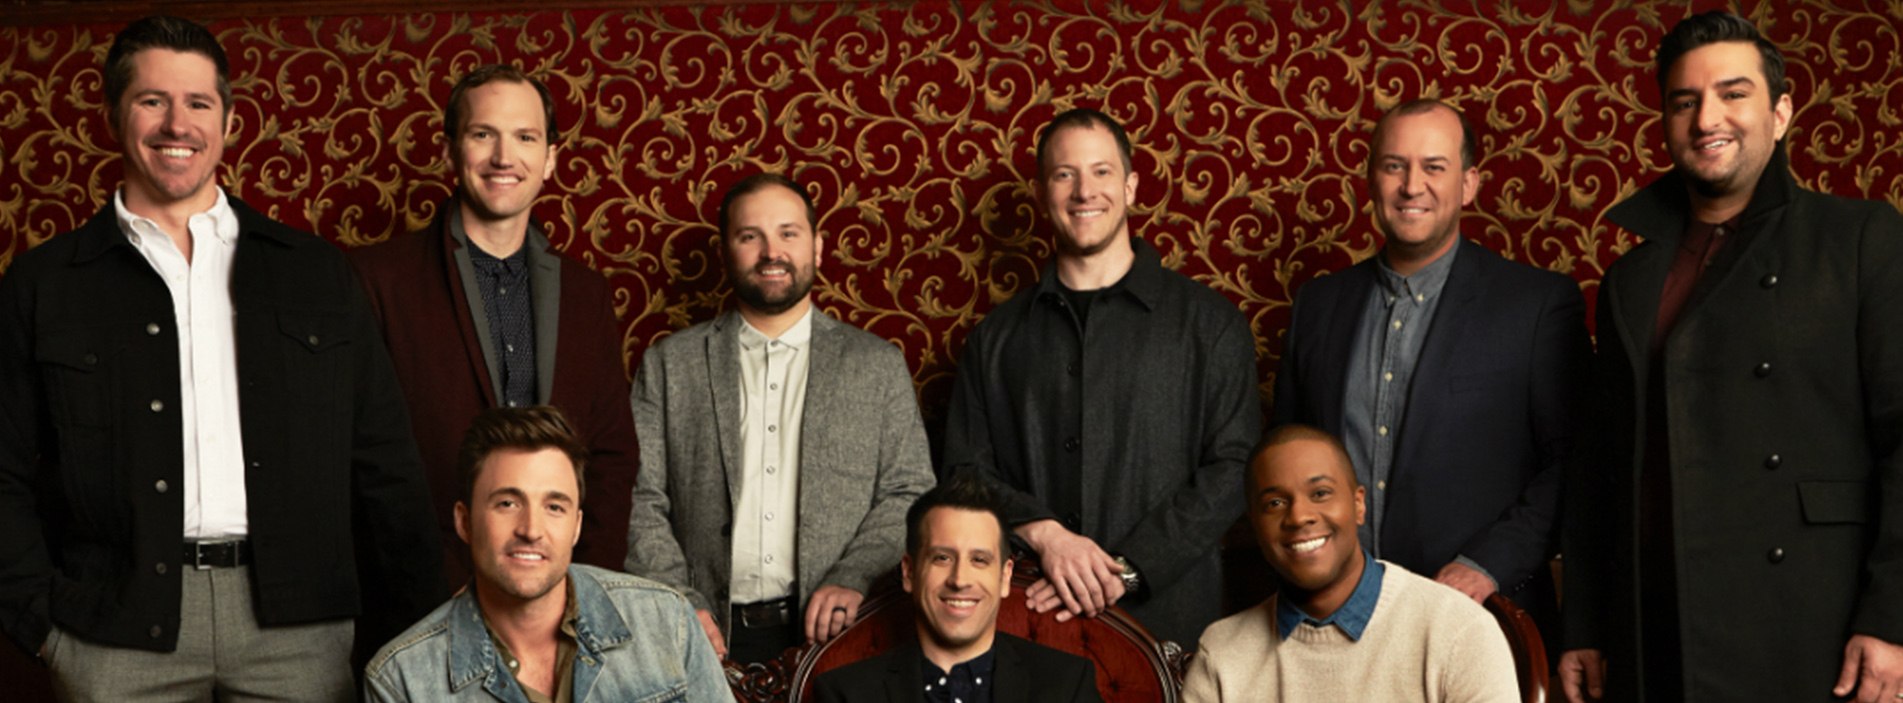 straight no chaser one shot tour - 12 Days Of Christmas By Straight No Chaser